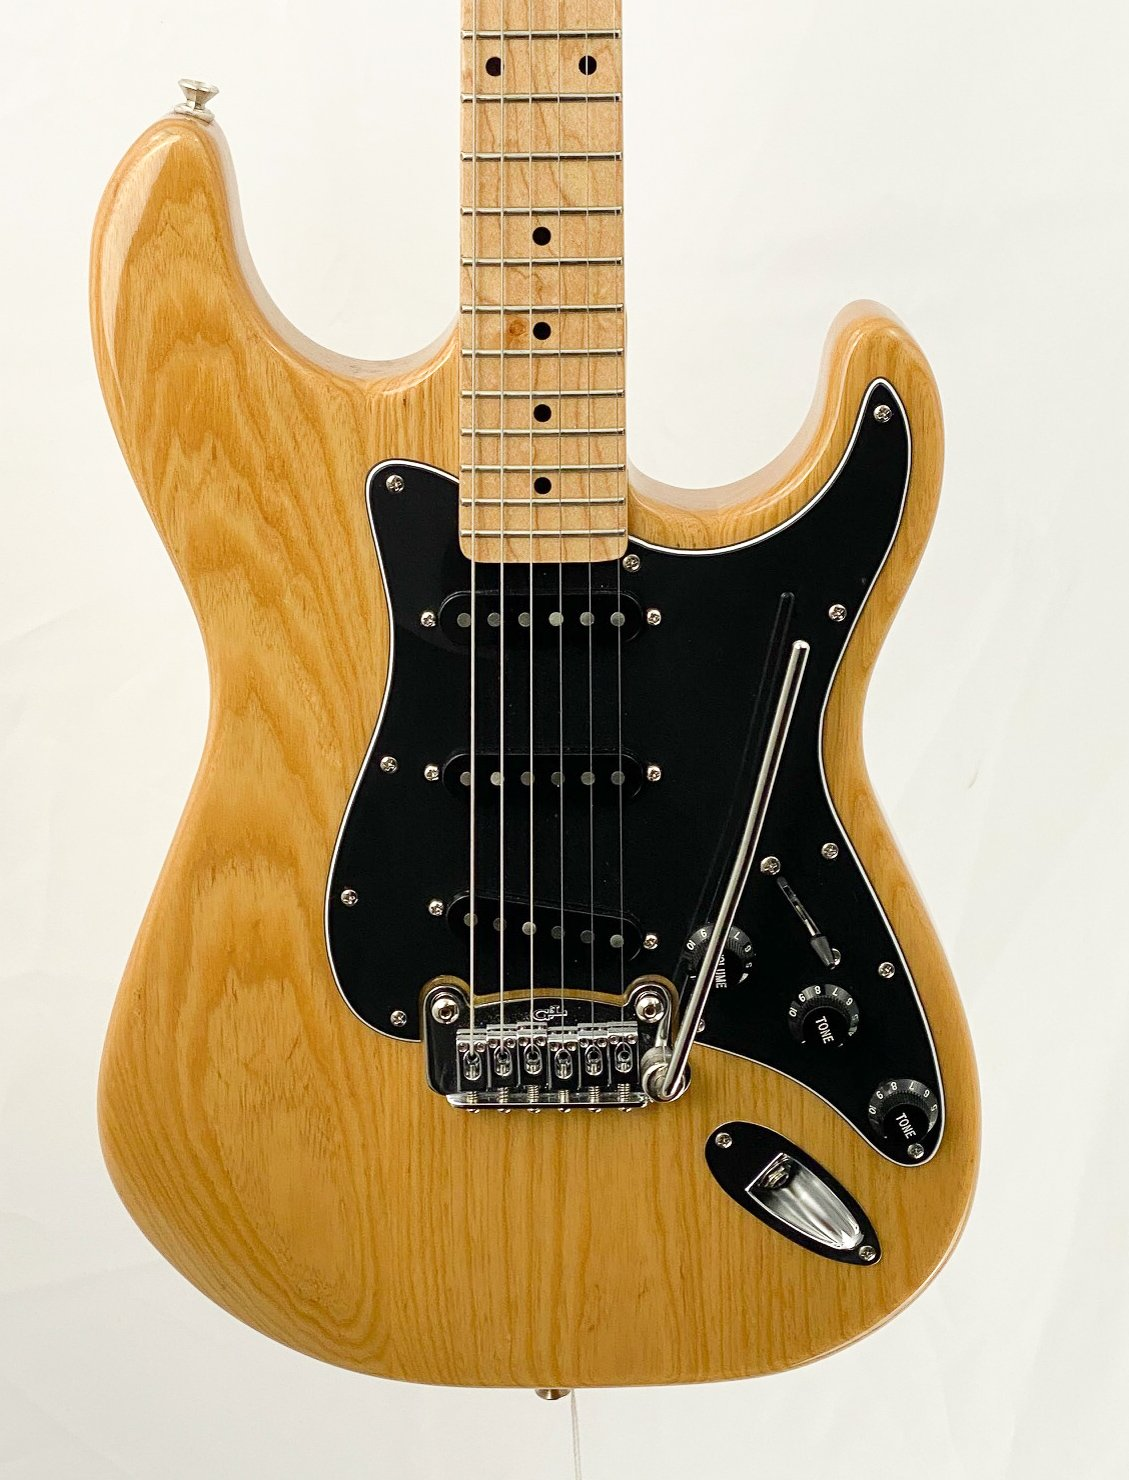 G&L Legacy Tribute - ash body